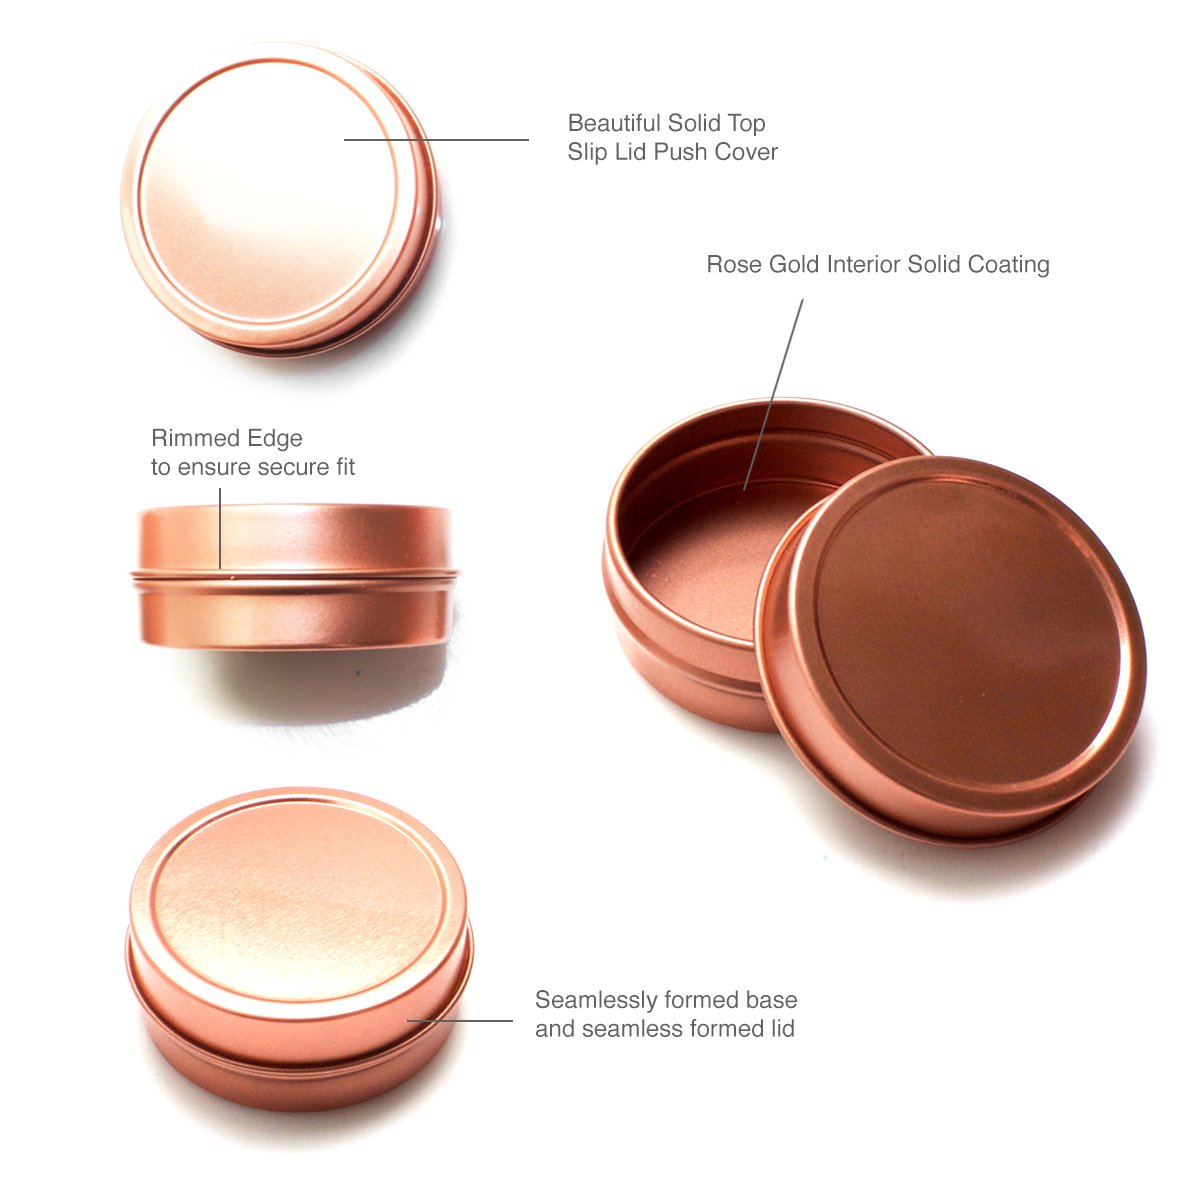 Mimi Pack ALL Shallow Solid Slip Top Tins (8 oz, Rose Gold) by Mimi Pack (Image #9)